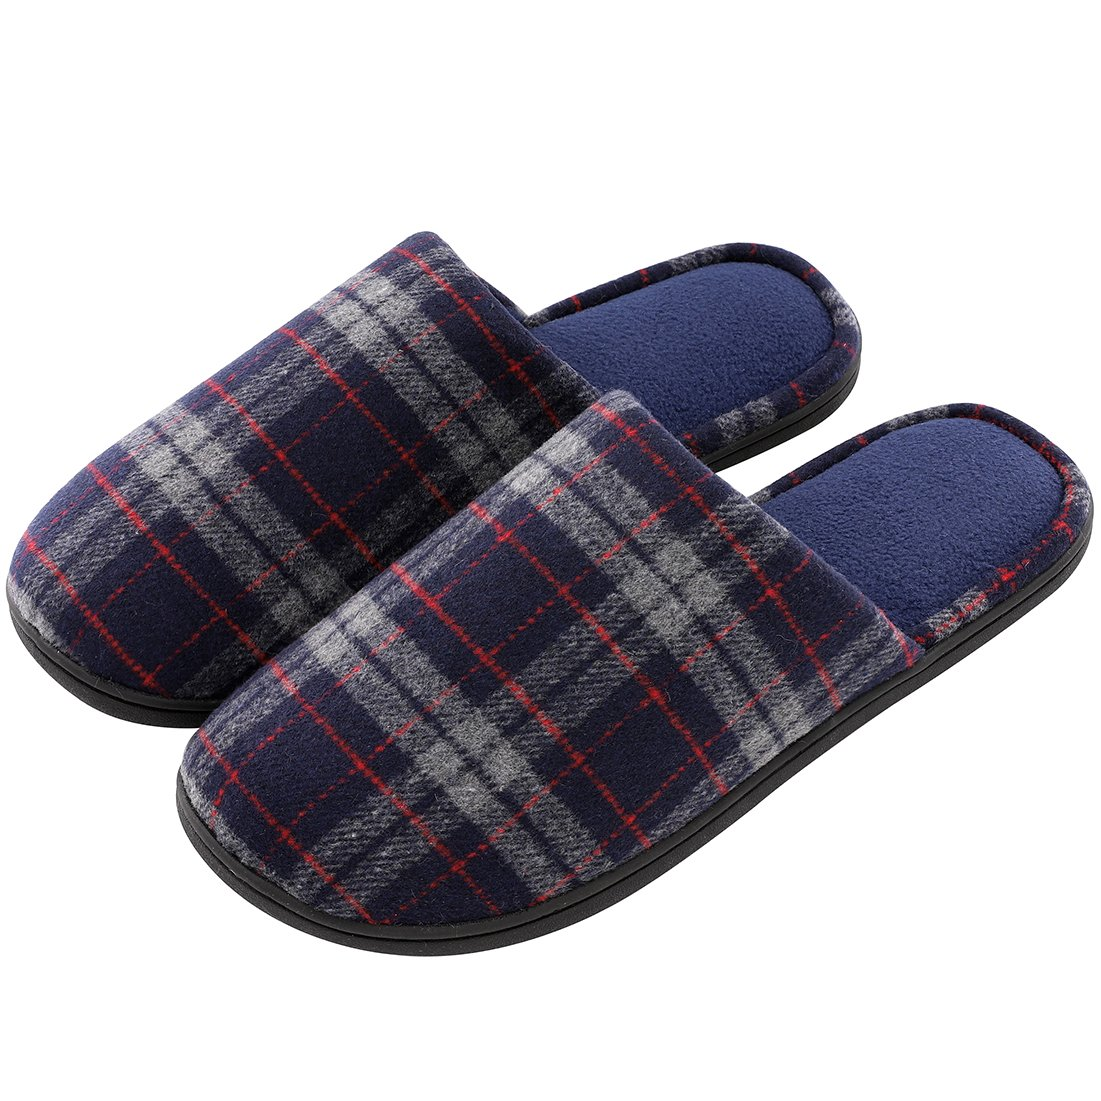 Men's Comfy Plaid Memory Foam Slippers Soft Fleece Lined House Shoes w/Non-Skid Rubber Sole